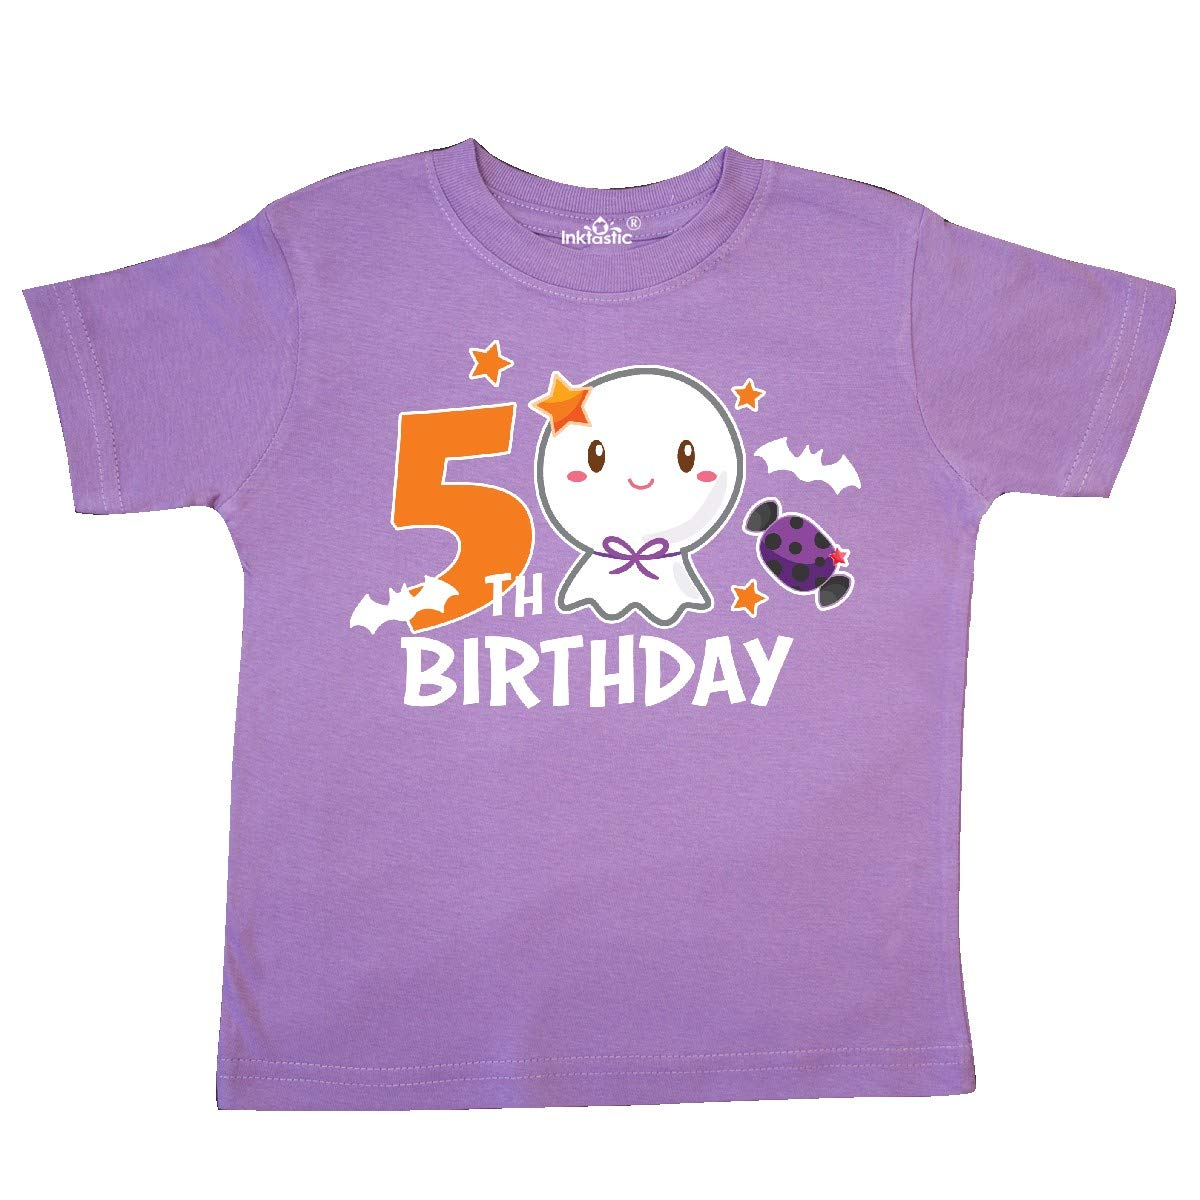 inktastic 5th Birthday with Cute Ghost and Bat Toddler T-Shirt